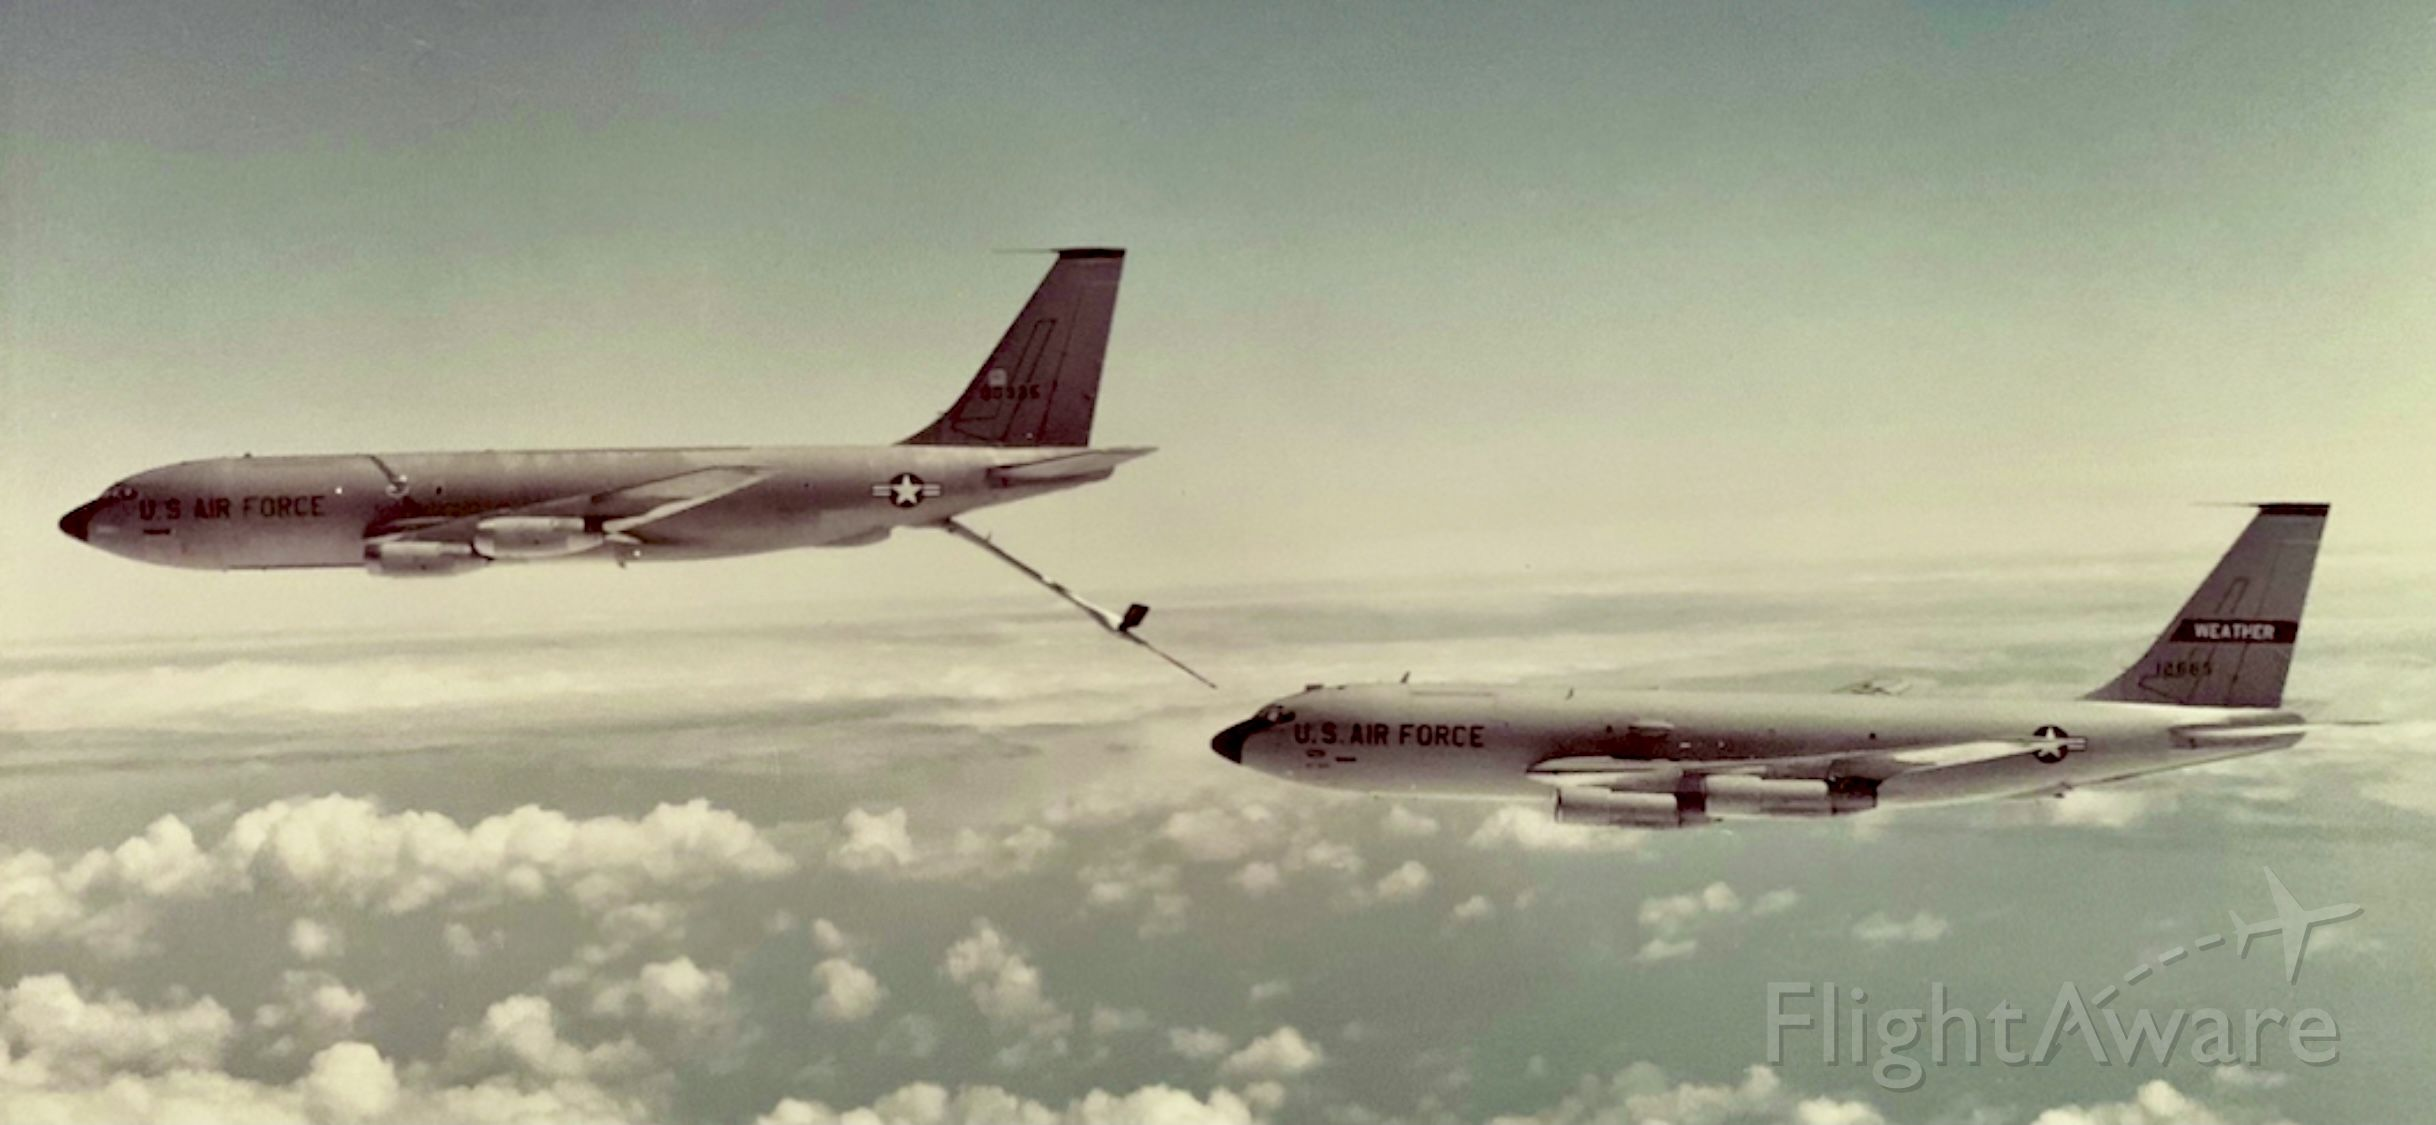 N12665 — - Inflight air refueling during operational mission in support of Nuclear Test Ban Treaty Safeguard D  October 1979